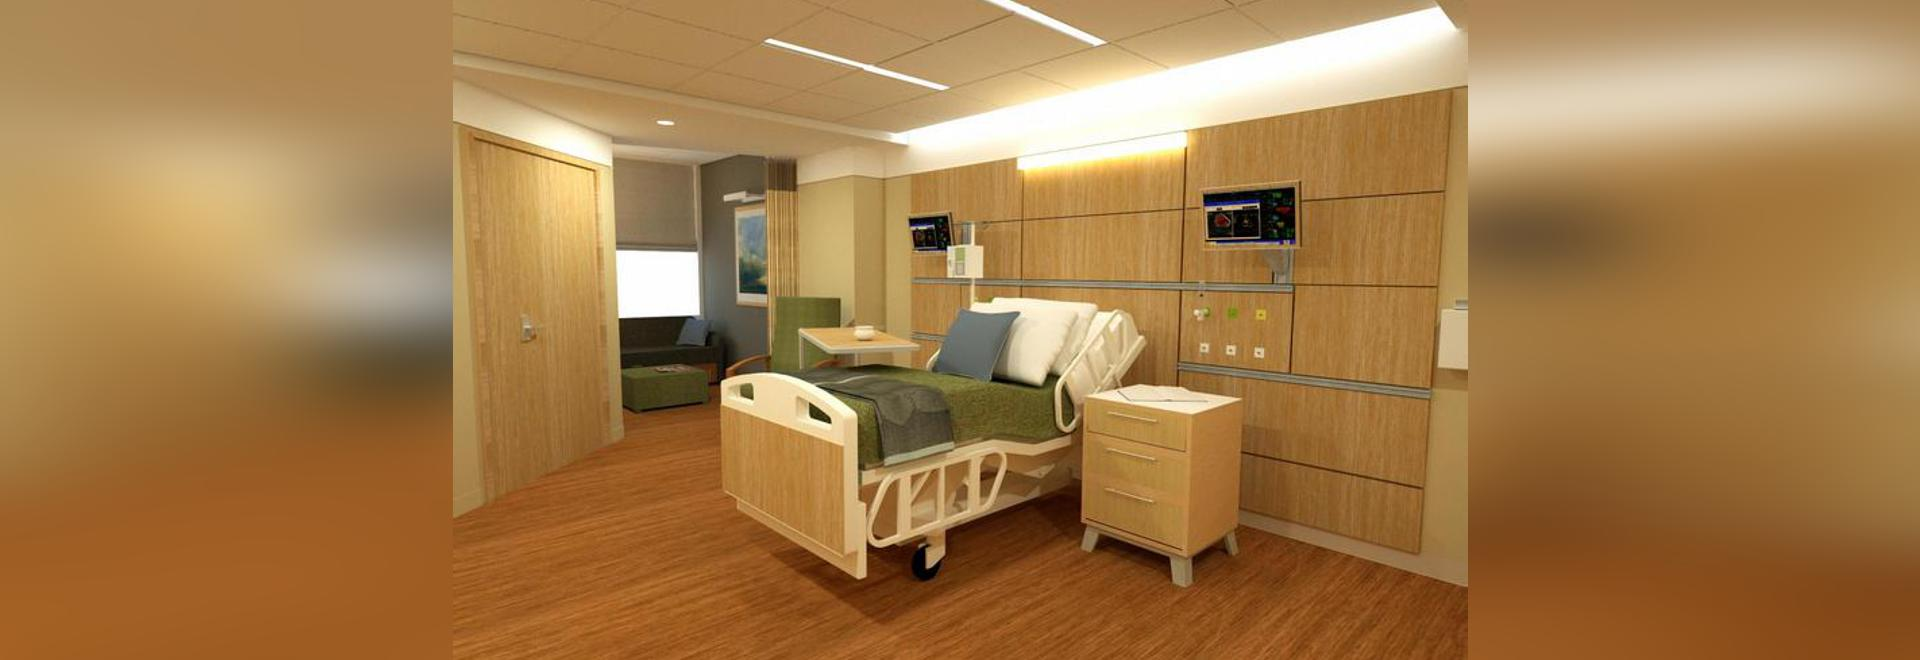 eastern maine medical center celebrates topping out of modernization